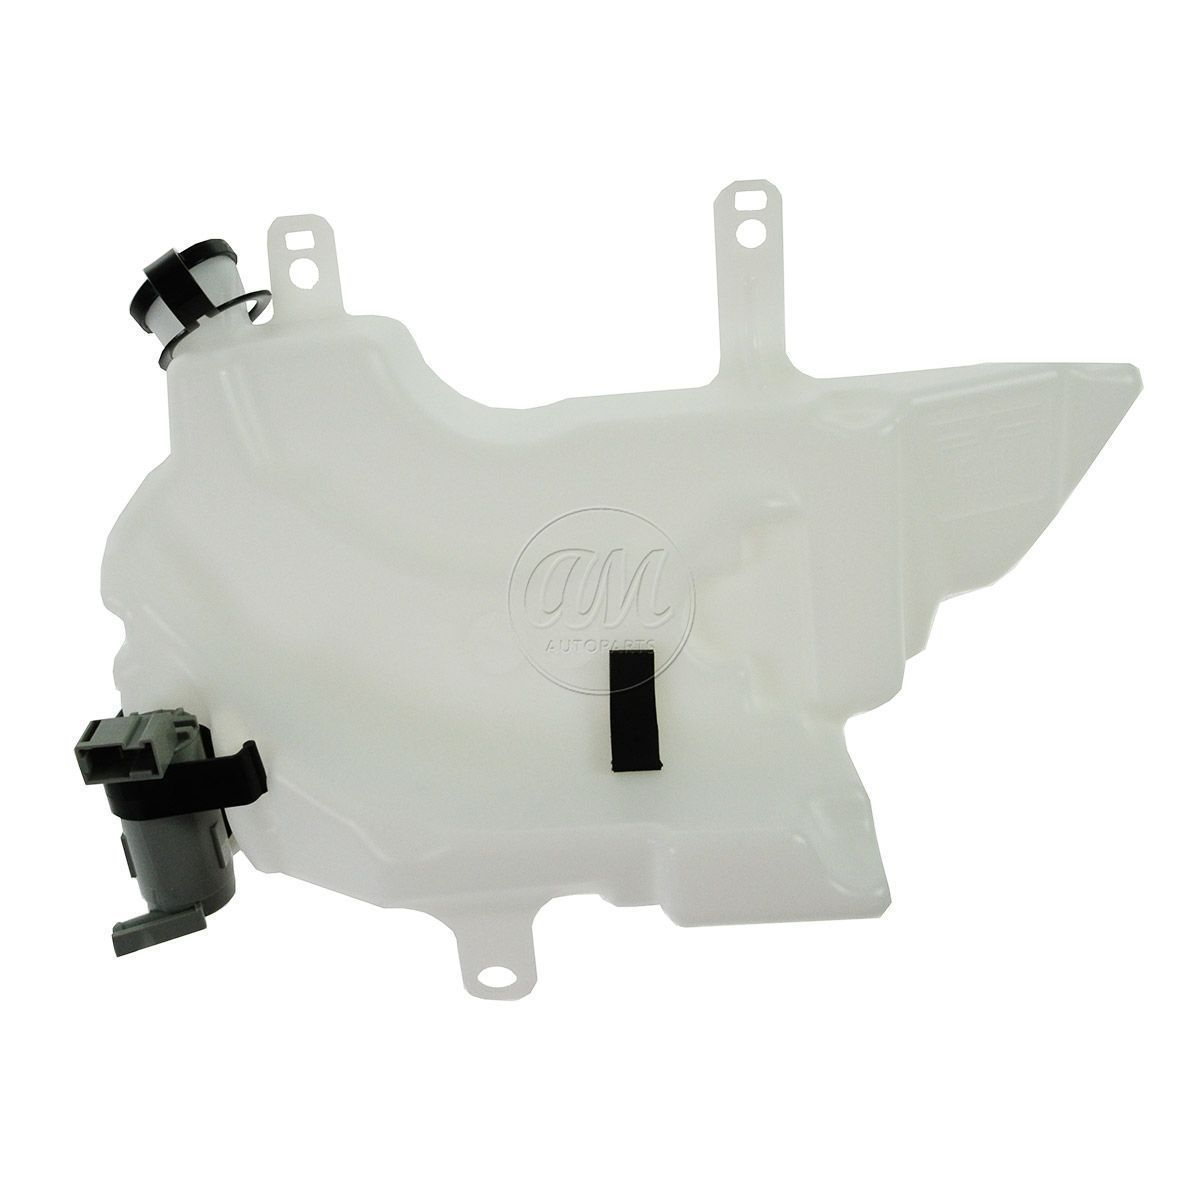 Windshield Washer Fluid Reservoir Pump Cap for Isuzu NPR NQR NRR